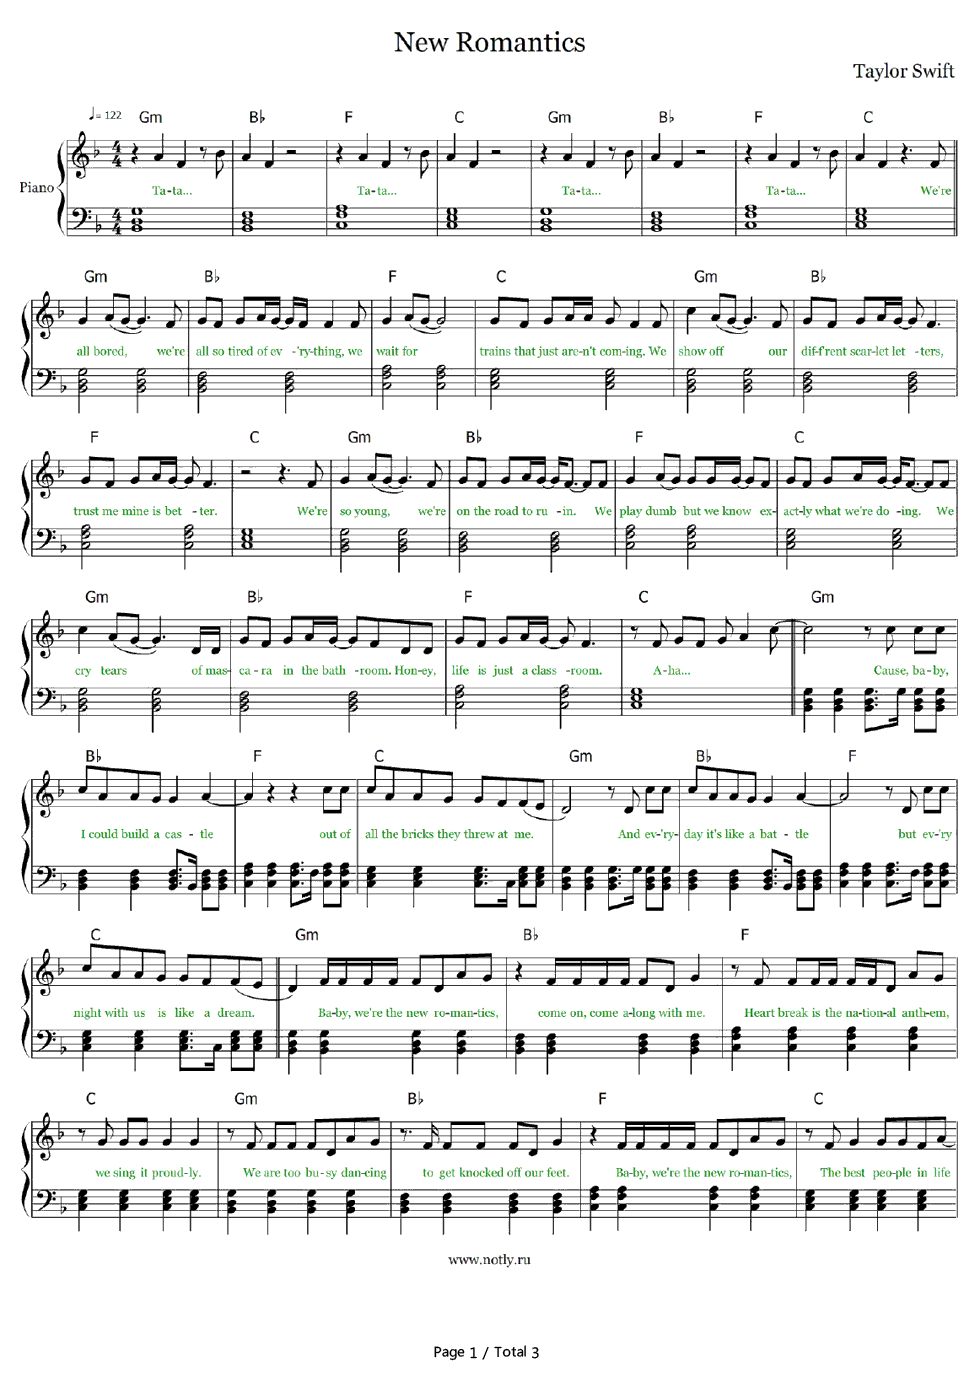 New romantics taylor swift stave preview 1 free piano sheet music listen now print sheet new romantics taylor swift stave preview 1 hexwebz Choice Image